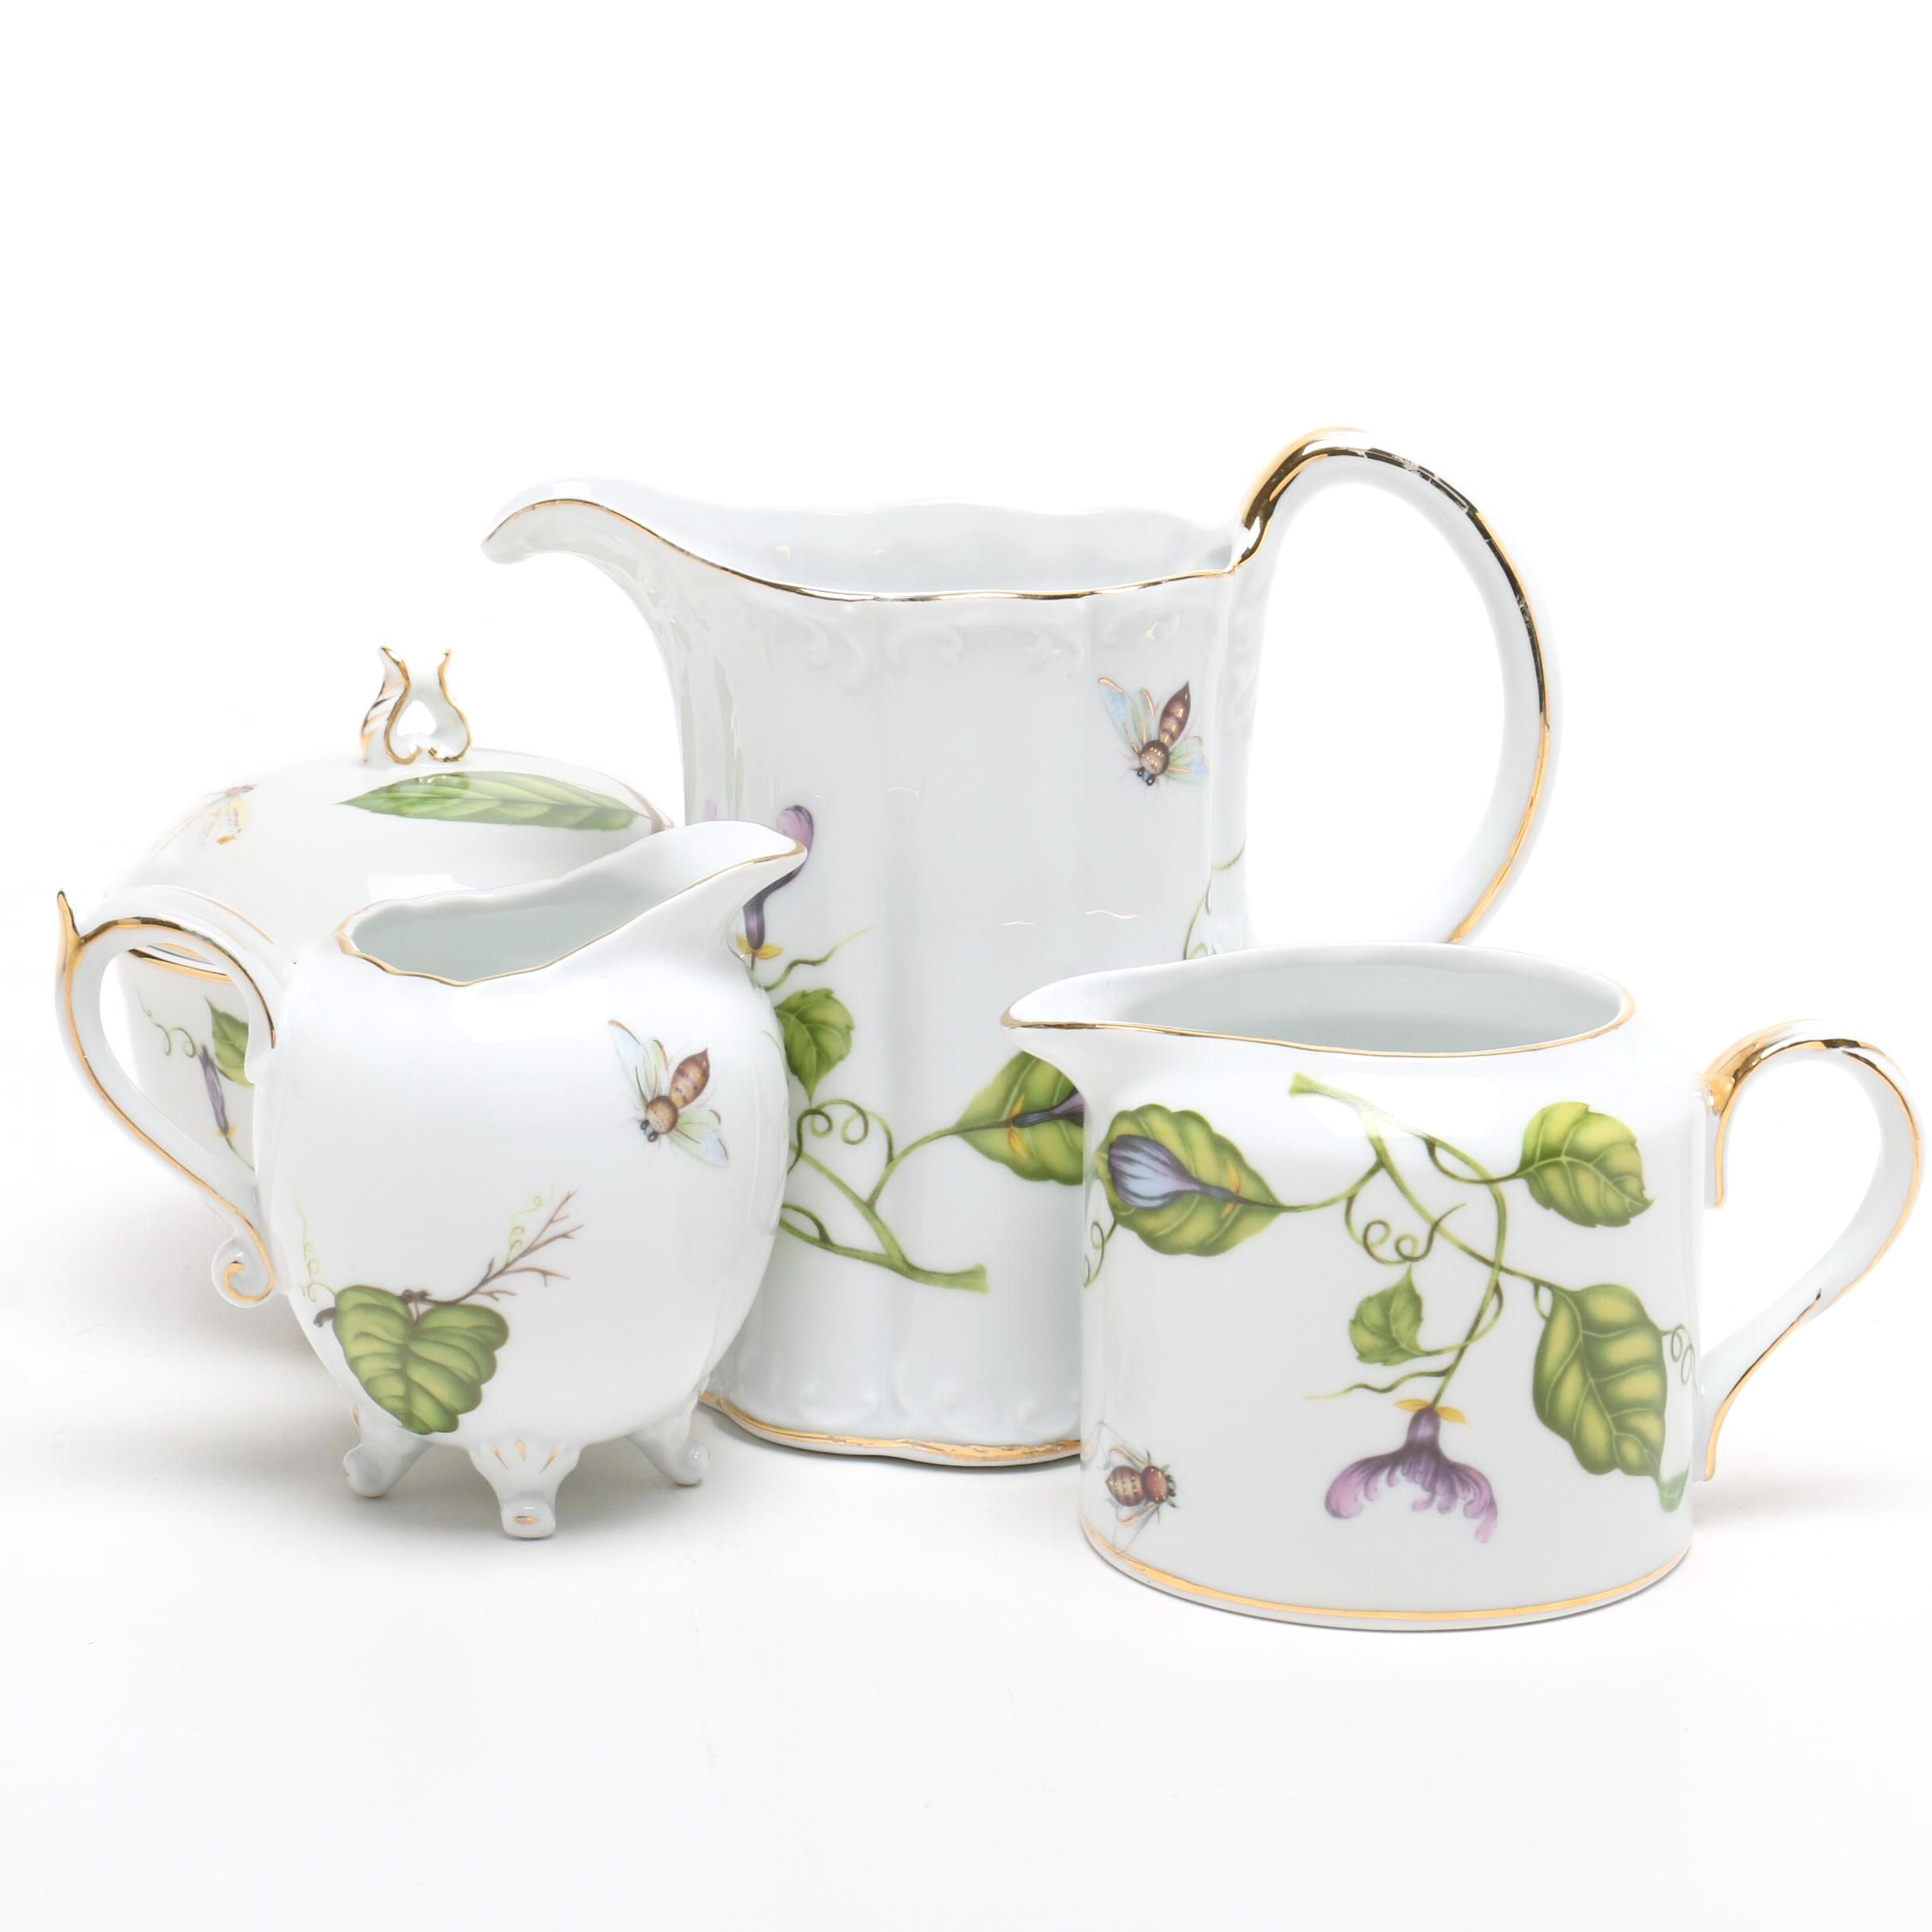 "L. Godinger & Co. ""Jardin"" Porcelain Tea Set"